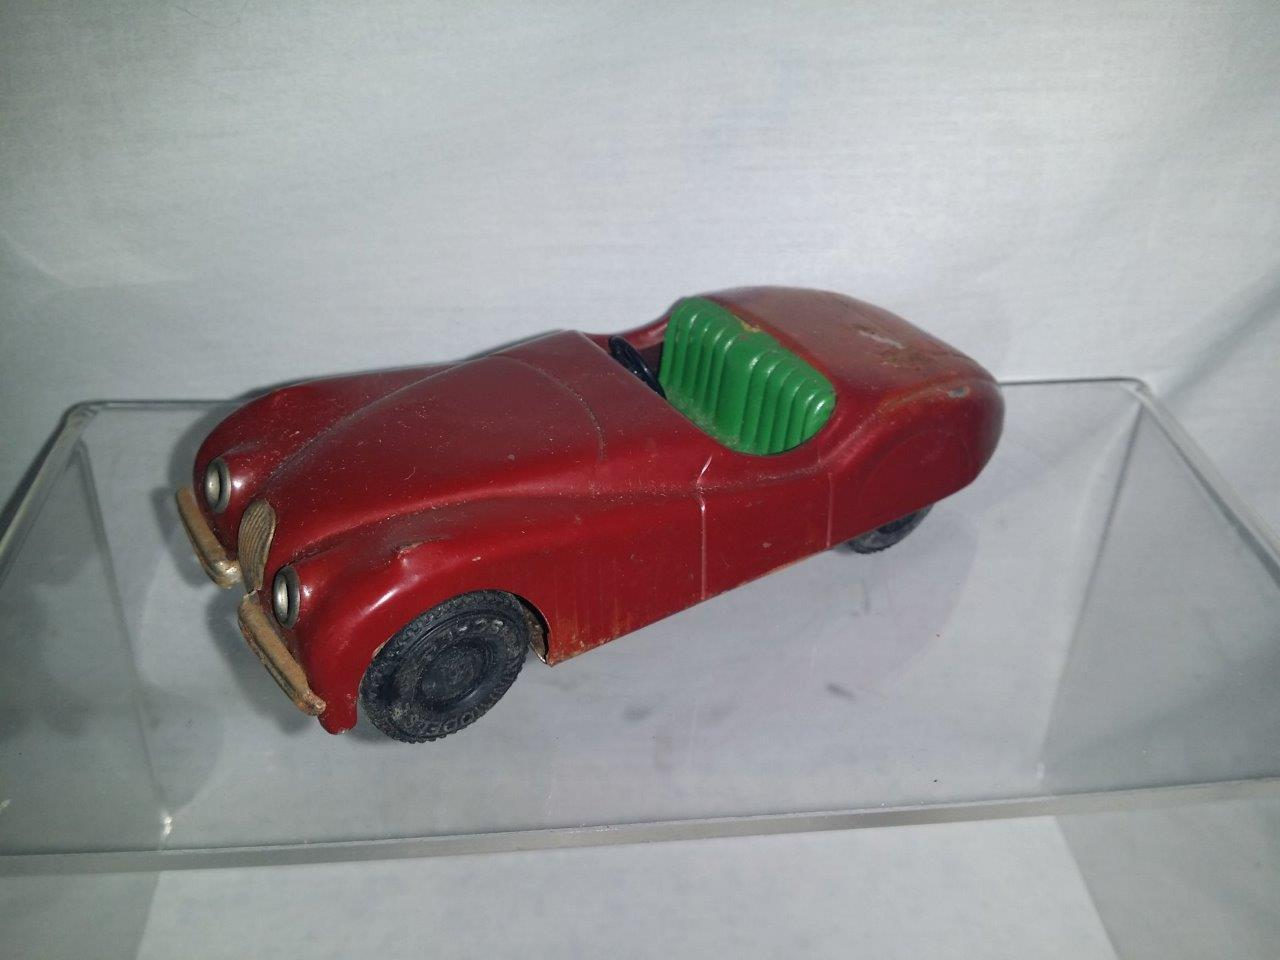 MINIMODELS SCALEX TIN PLATE XK JAGUAR 1950'S VERY RARE COLOUR NICE UNBOXED